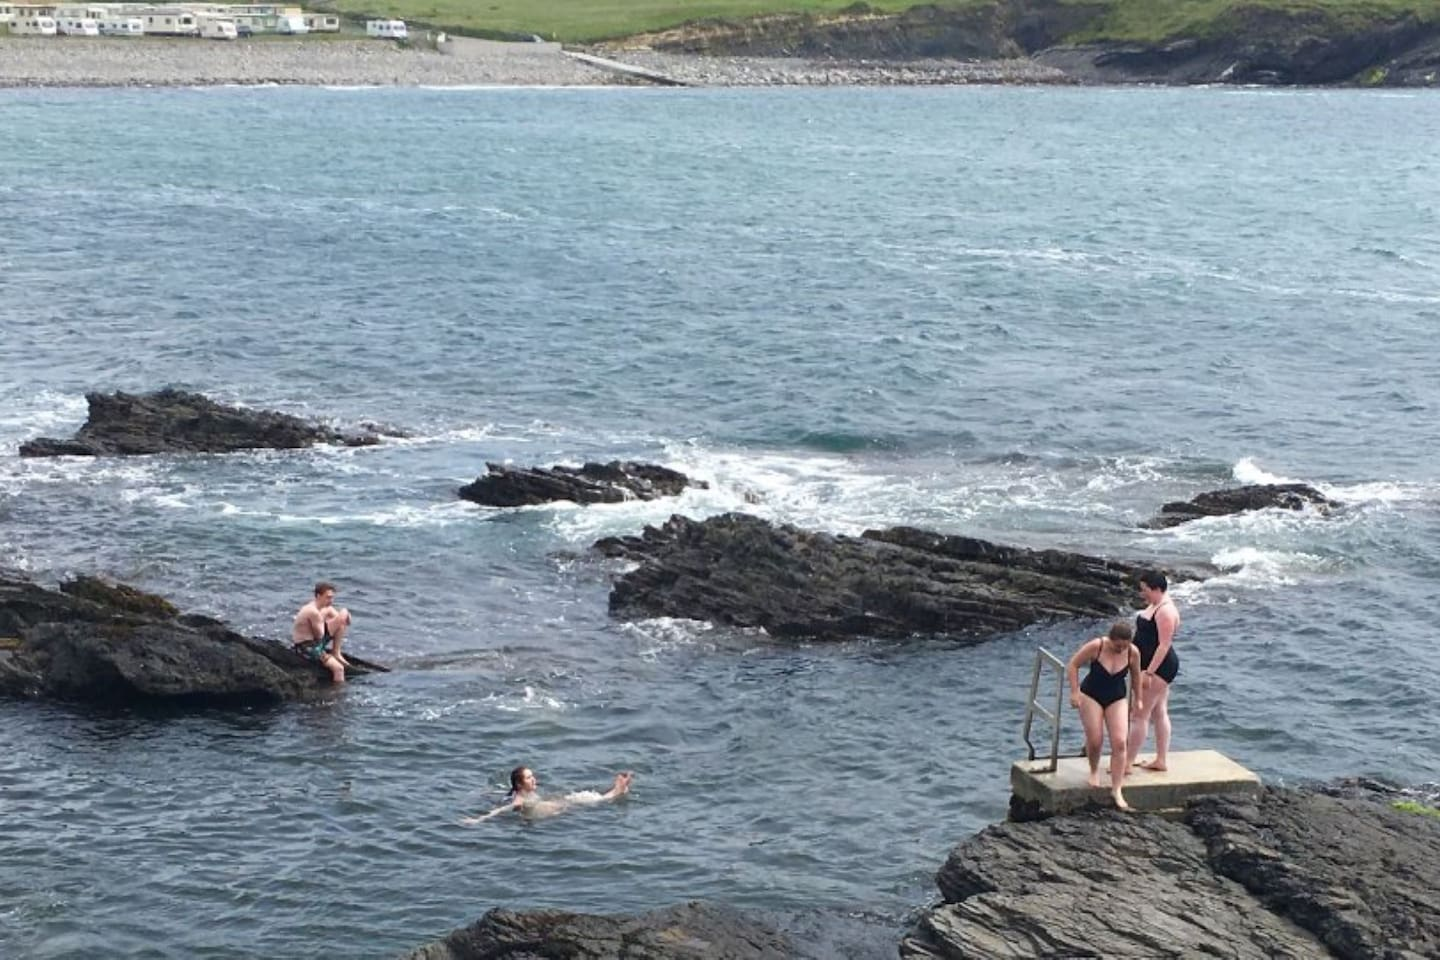 Have a dip in Kieran's Hole at the White Strand Beach